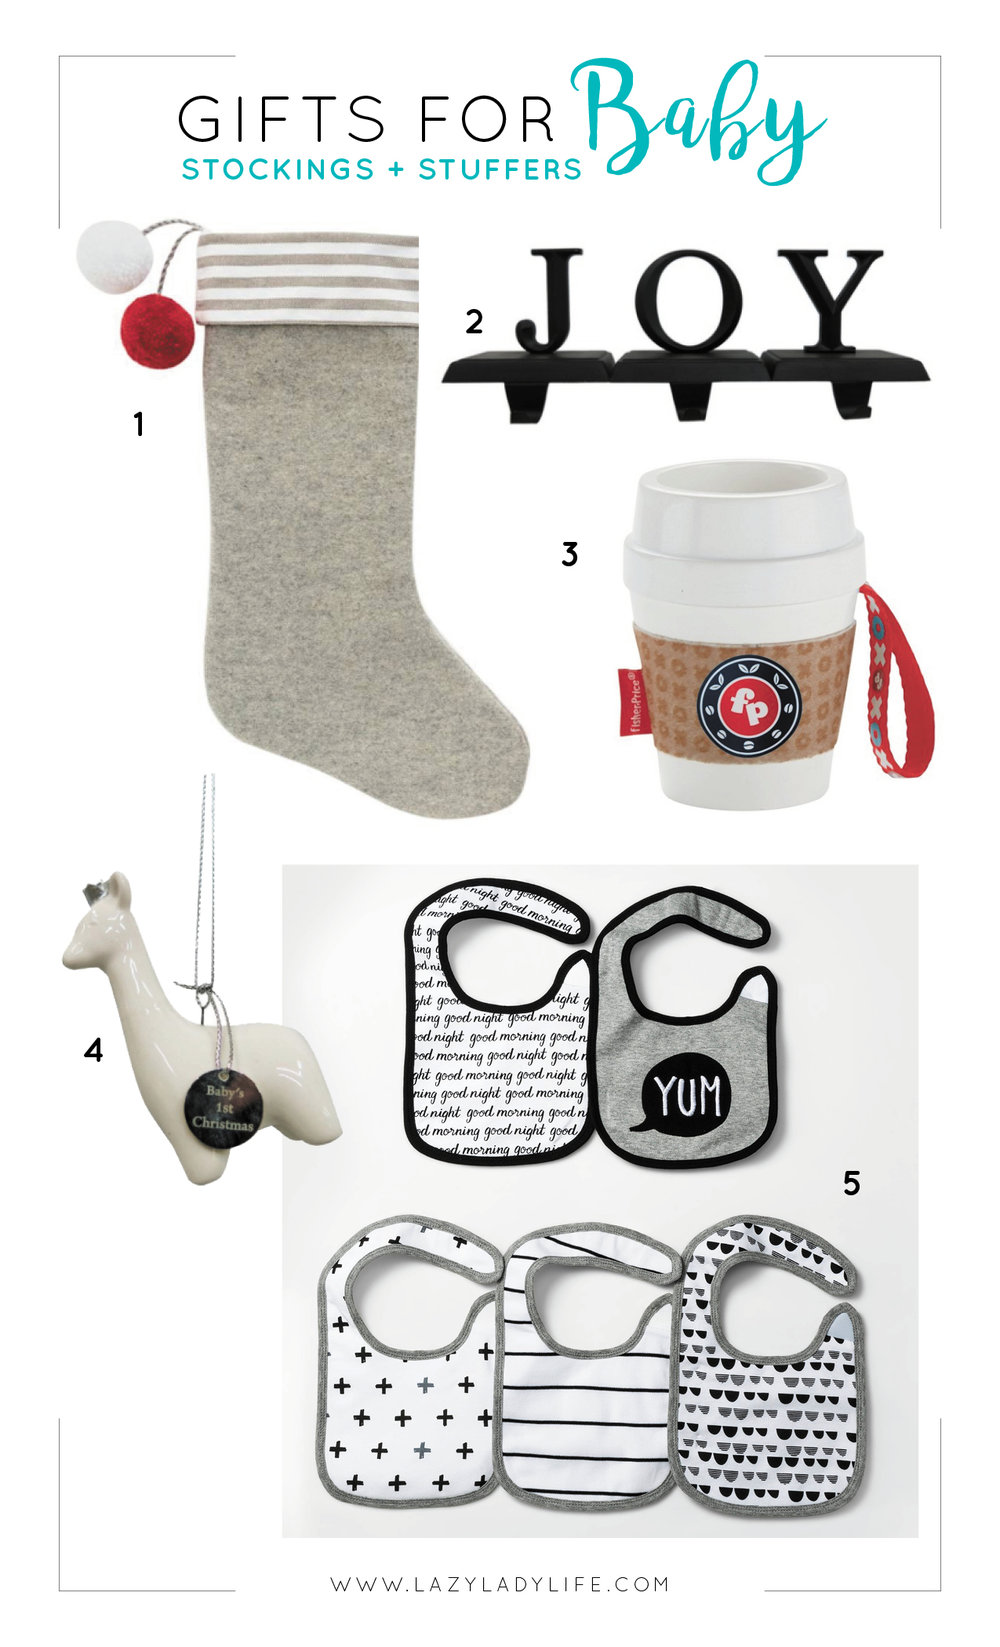 Baby-Gift-Guide-Stocking-Stuffers.jpg